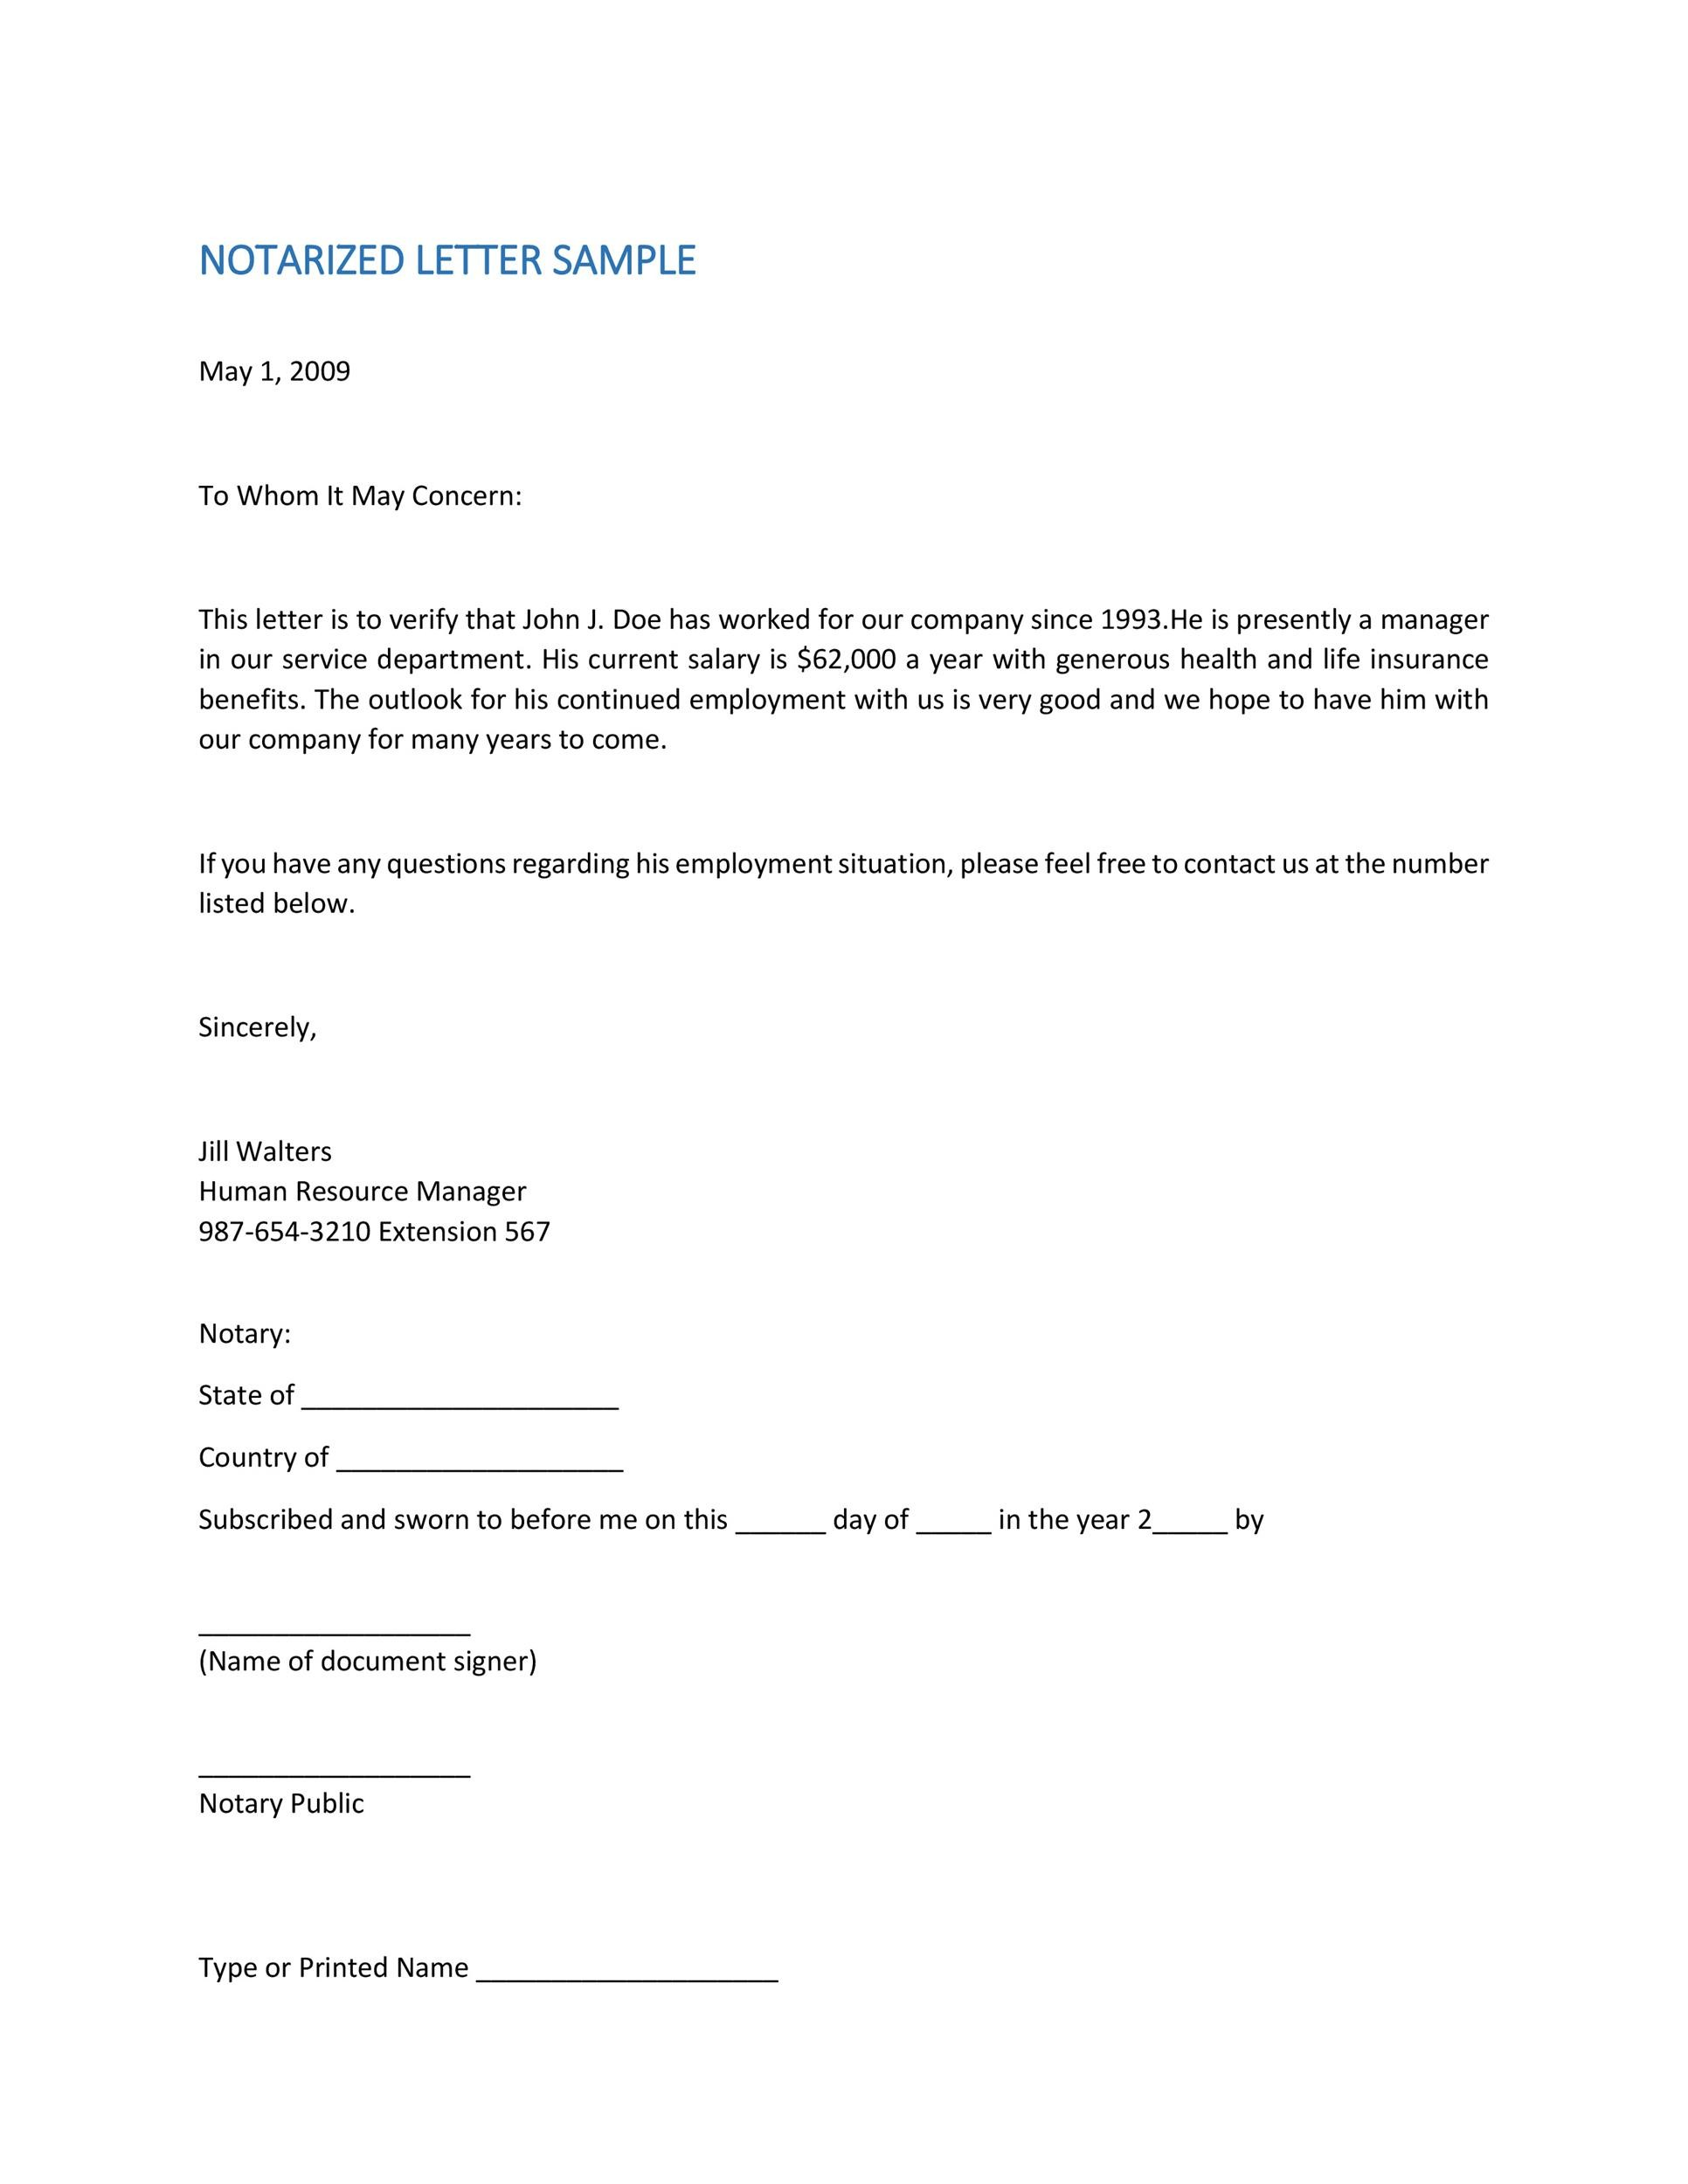 30 Professional Notarized Letter Templates Template Lab – Sample Notary Statements